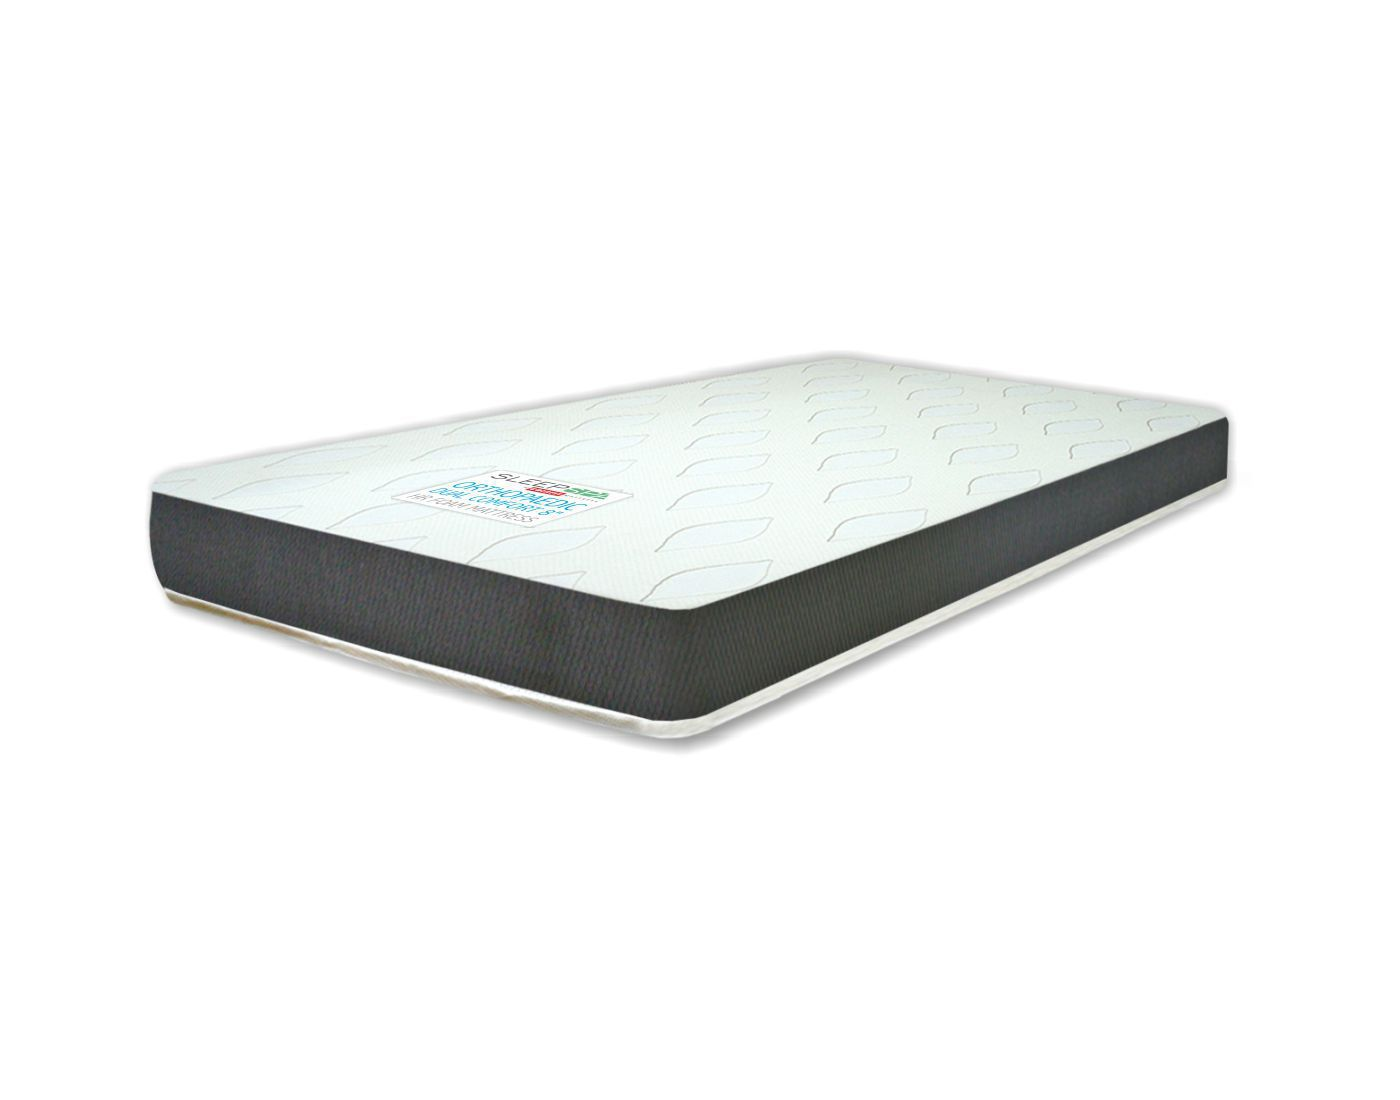 sleep spa na 20 32 cm 8 orthopedic mattress buy sleep spa na